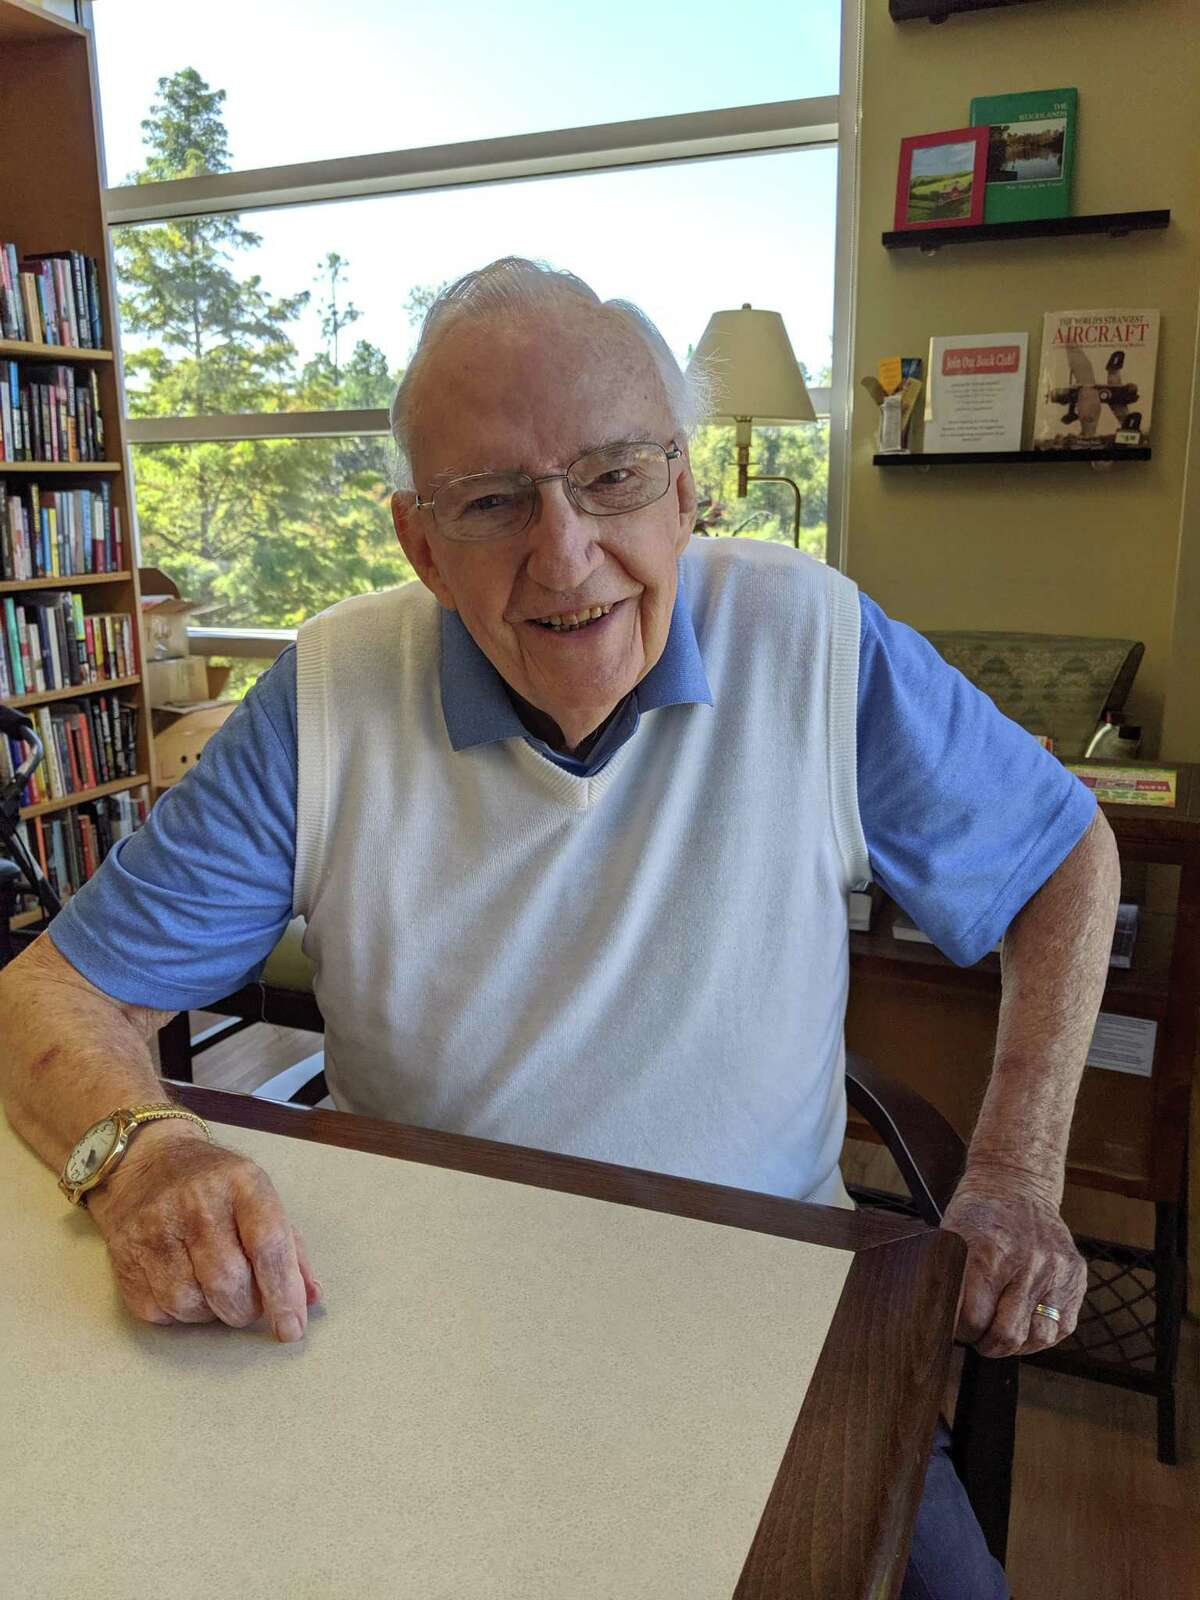 The Rev. Don Gebert finally retired in 2019. Gebert was instrumental in creating The Woodlands that currently exists. His family said he leaves behind a legacy of caring for the less fortunate.